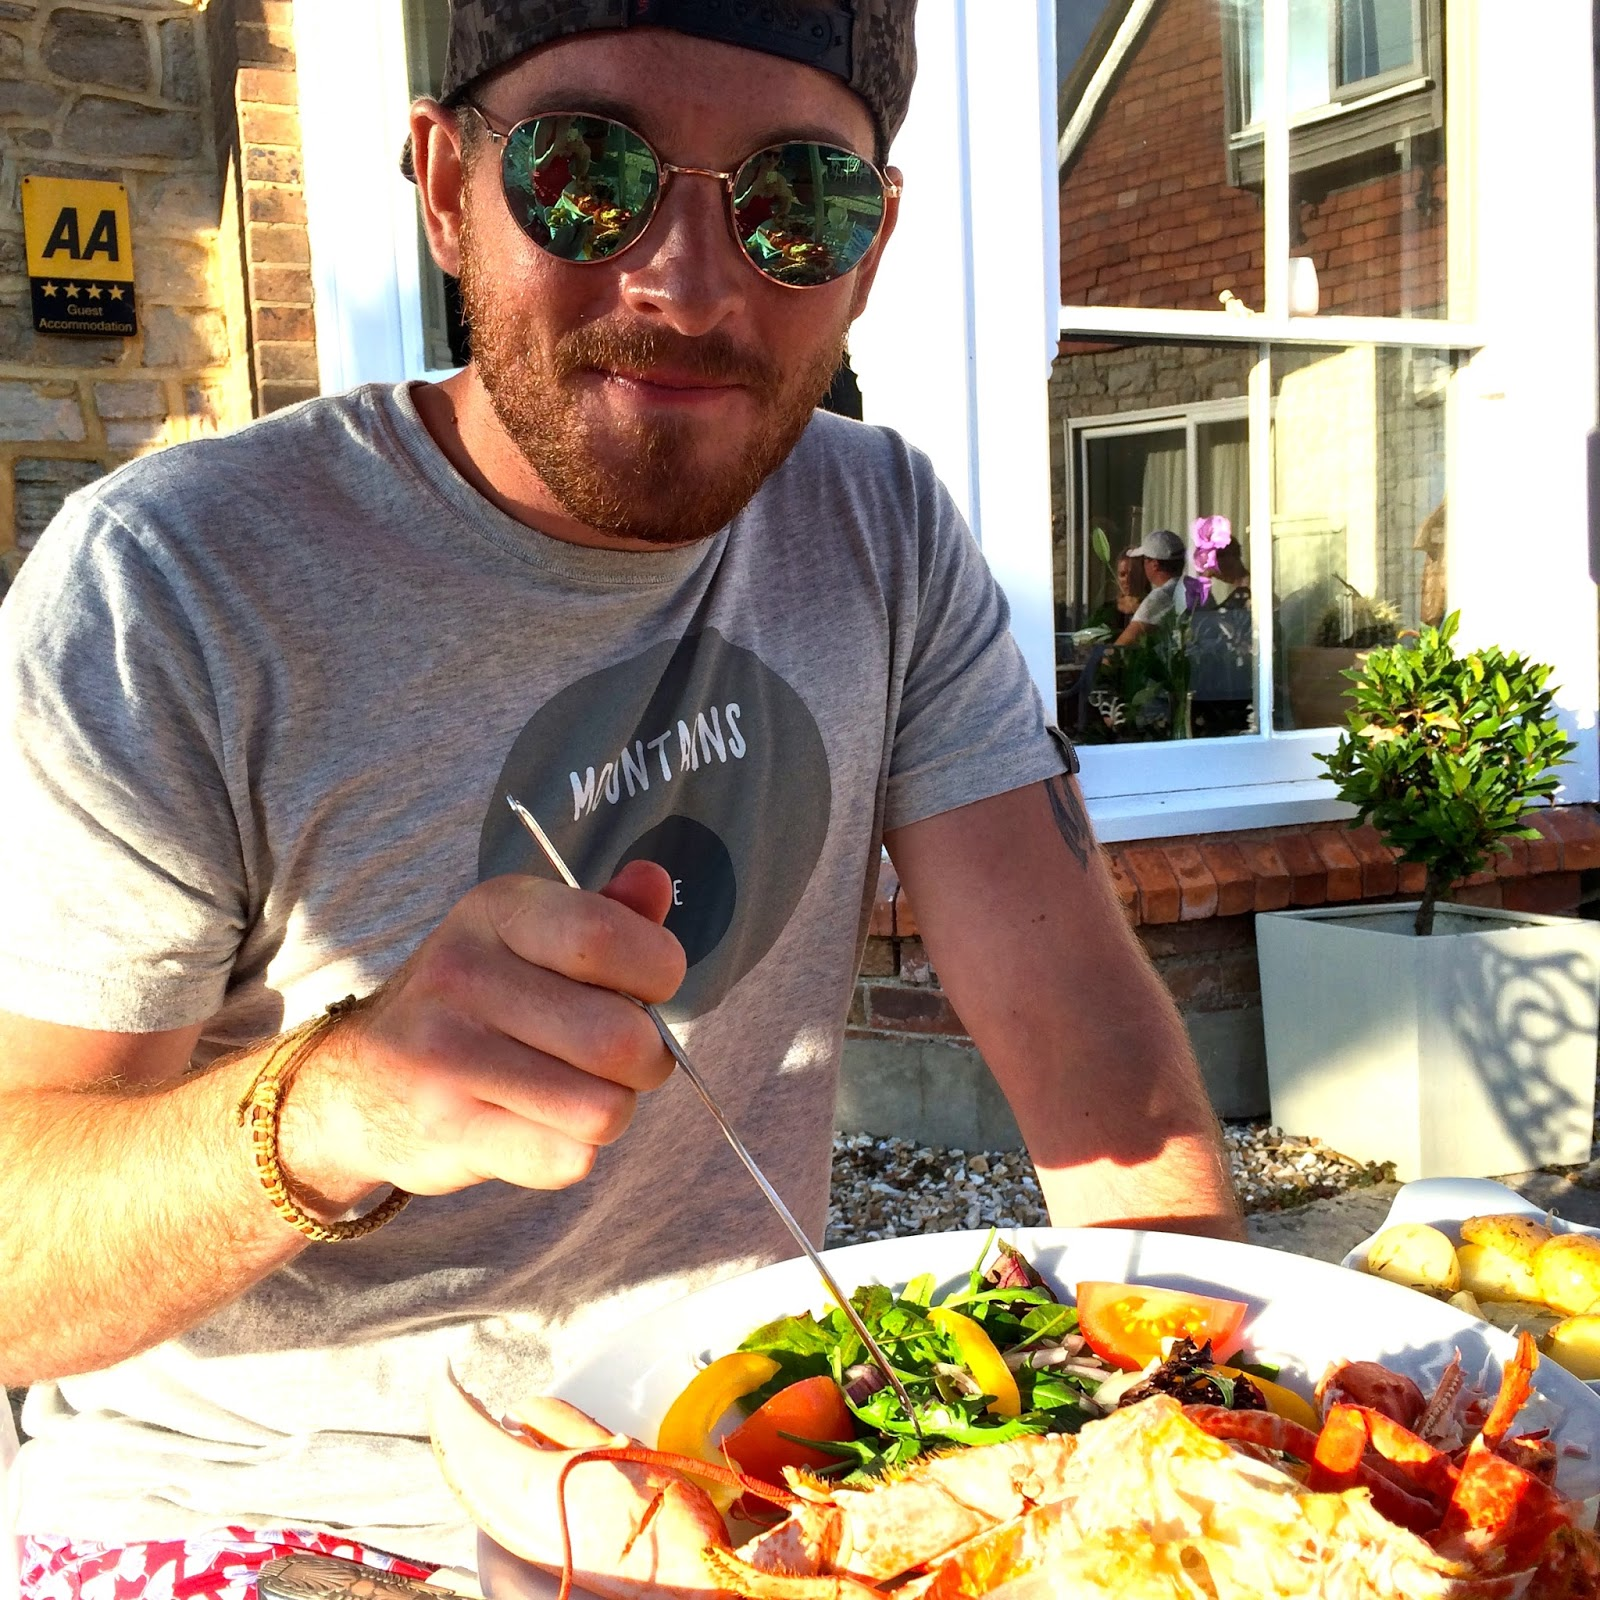 Lobster at Lulworth Cove, food bloggers, UK lifestyle blog